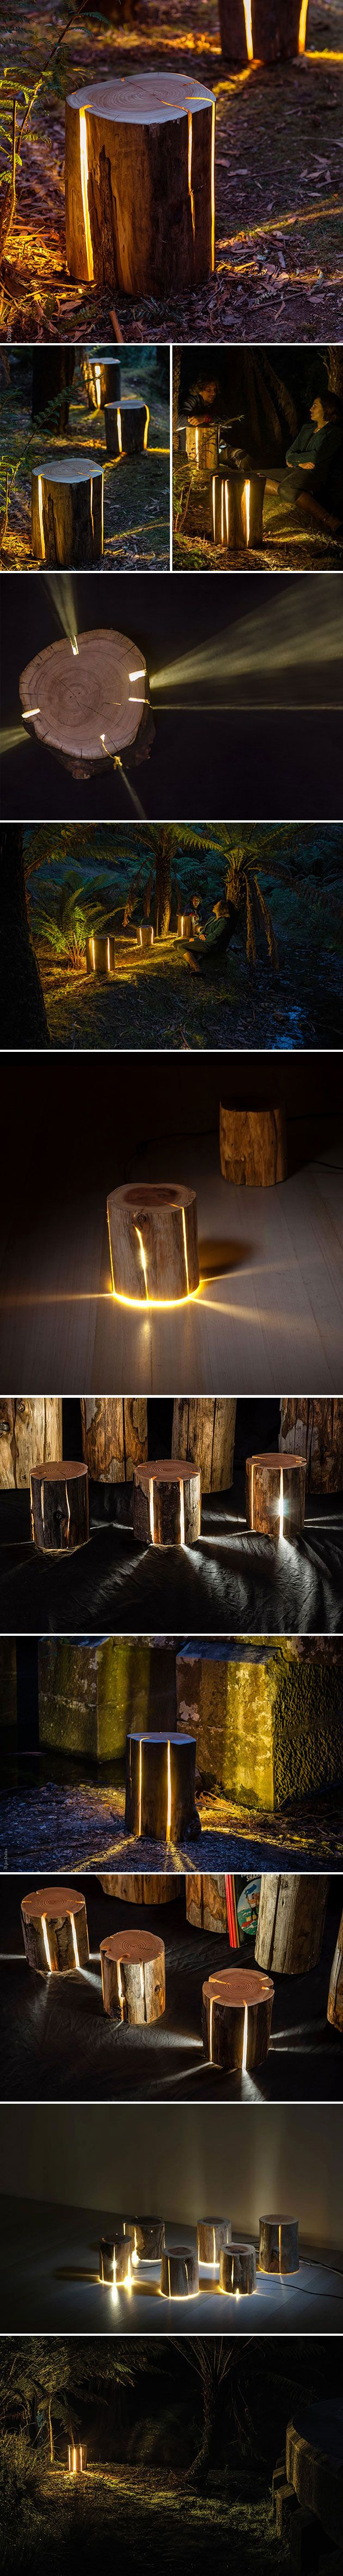 Tasmania-based furniture designer Duncan Meerding loves the outback wilderness, which comes across in his work – his most popular pieces are simple logs whose natural cracks emit soft, warm light. Meerding is also legally blind, so the use of light in his pieces helps him communicate how he sees the world